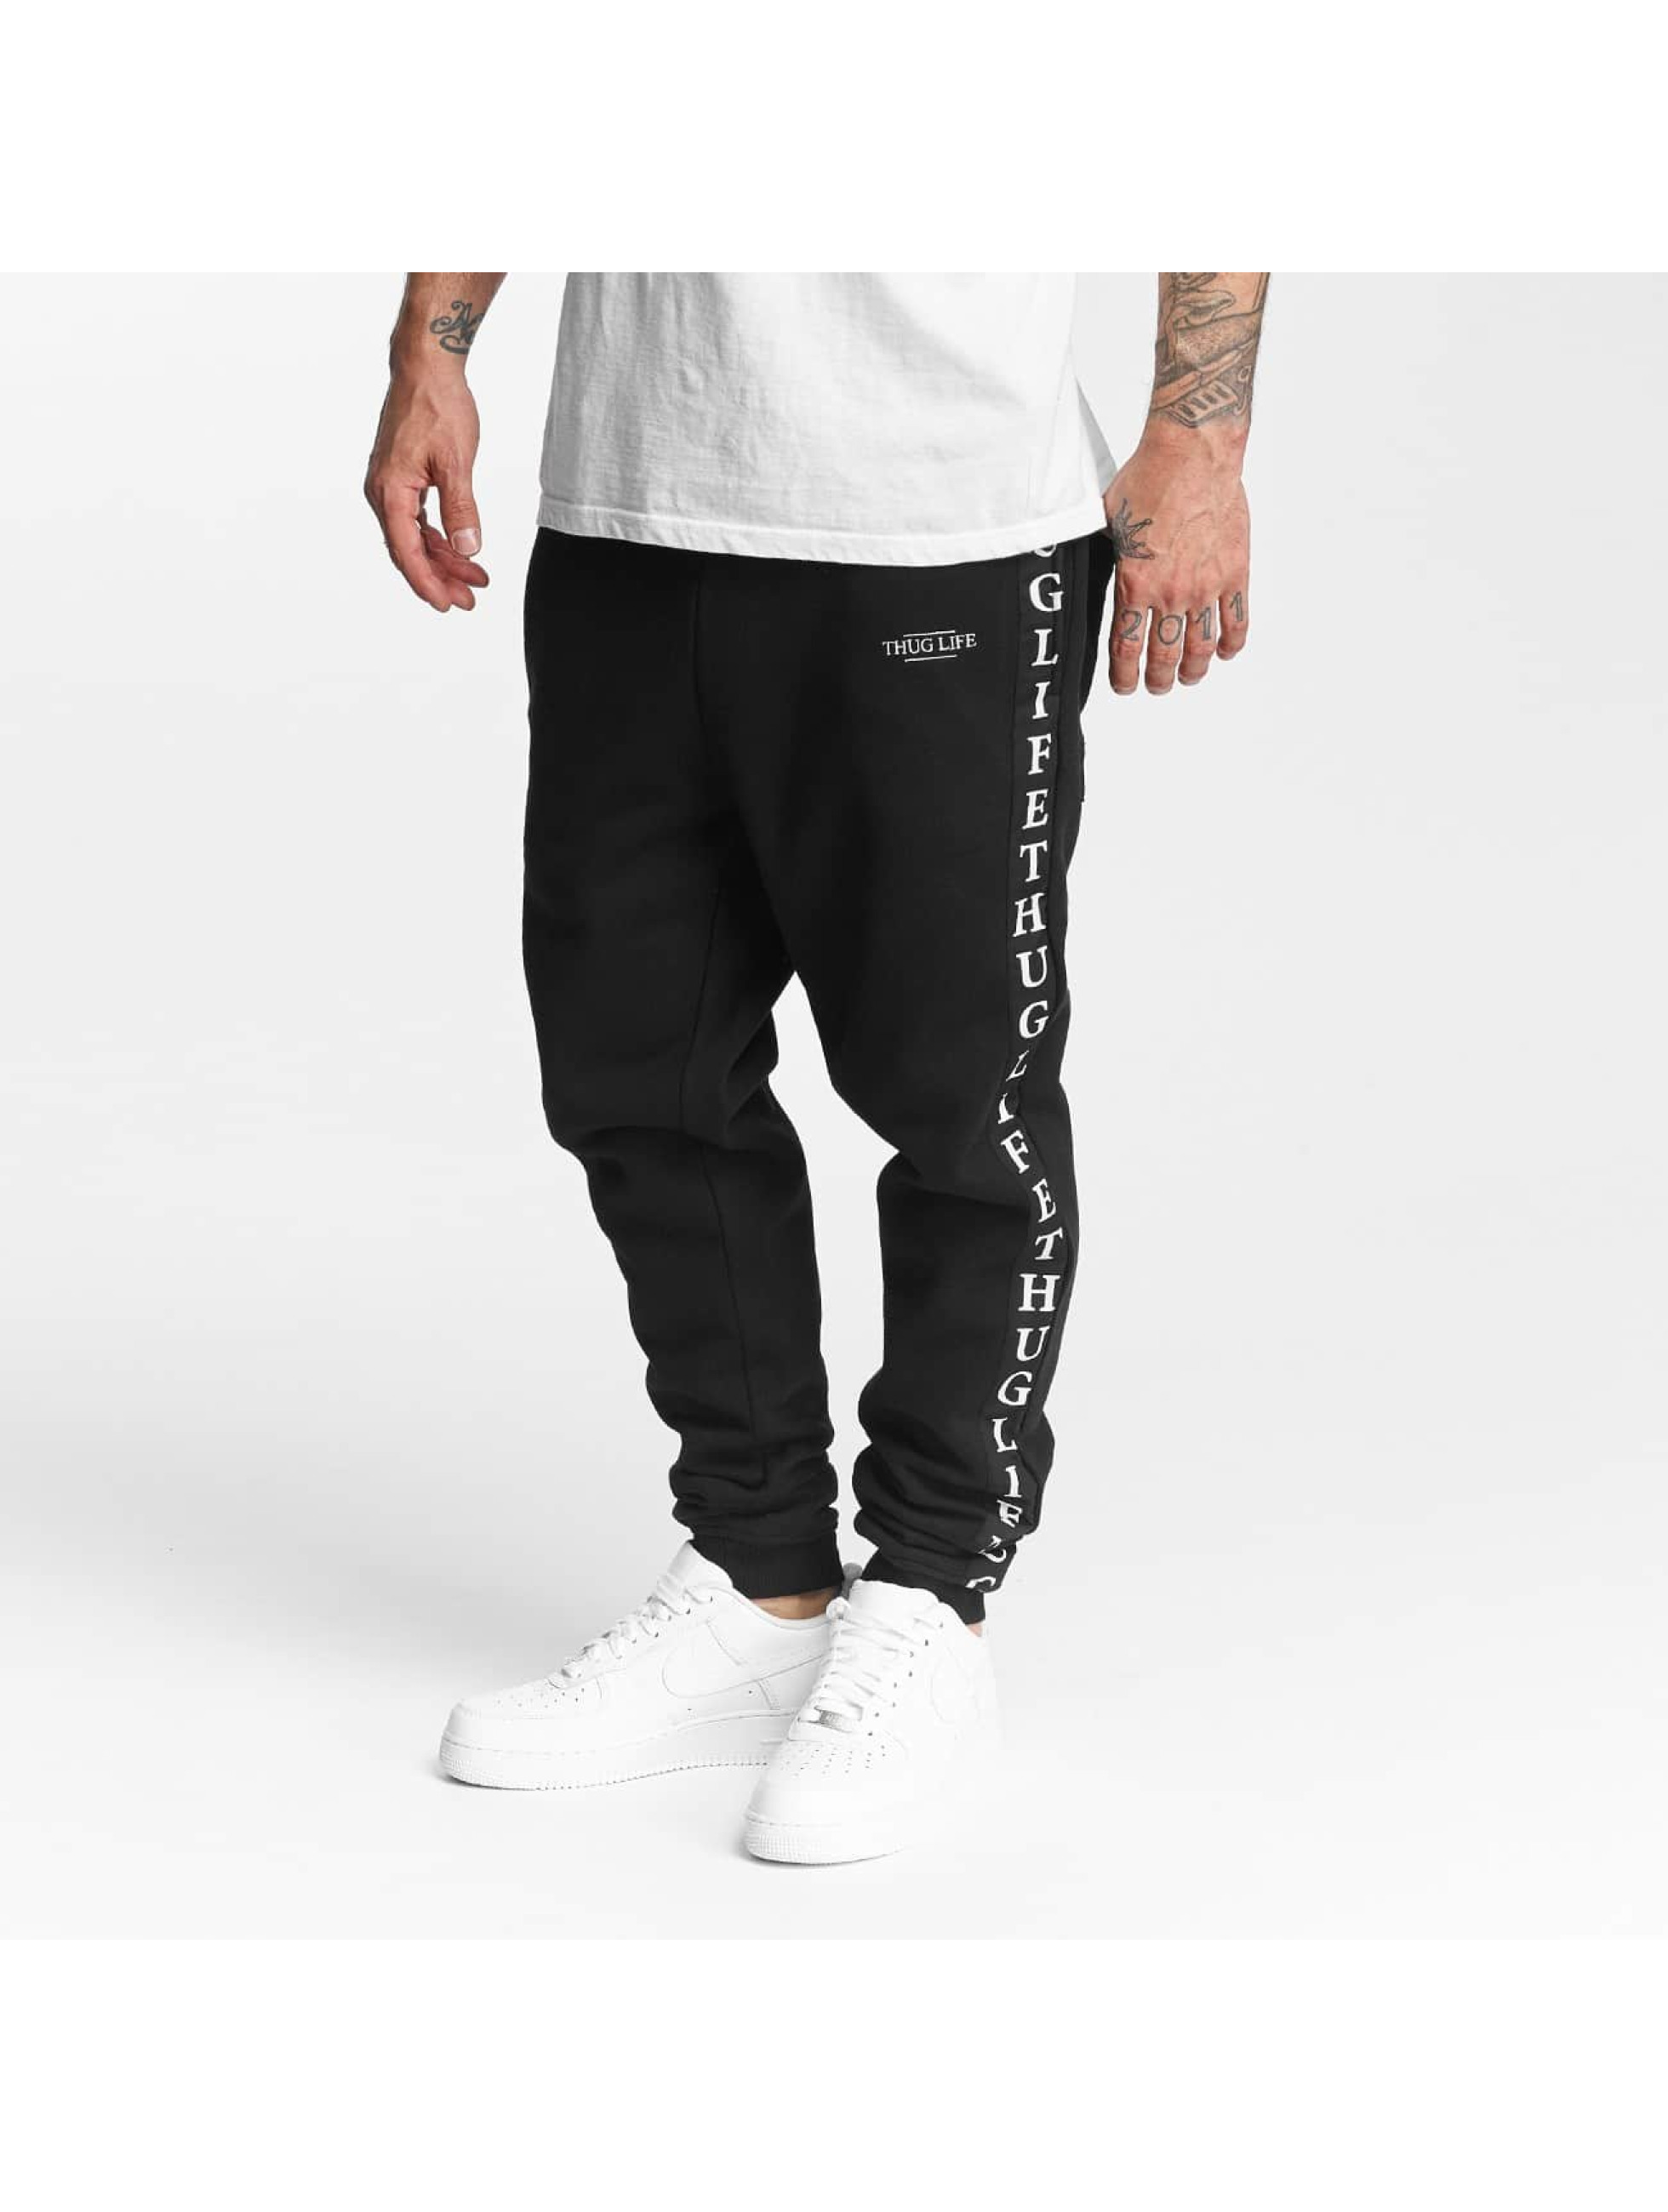 Thug Life Wired Life Sweatpants Black